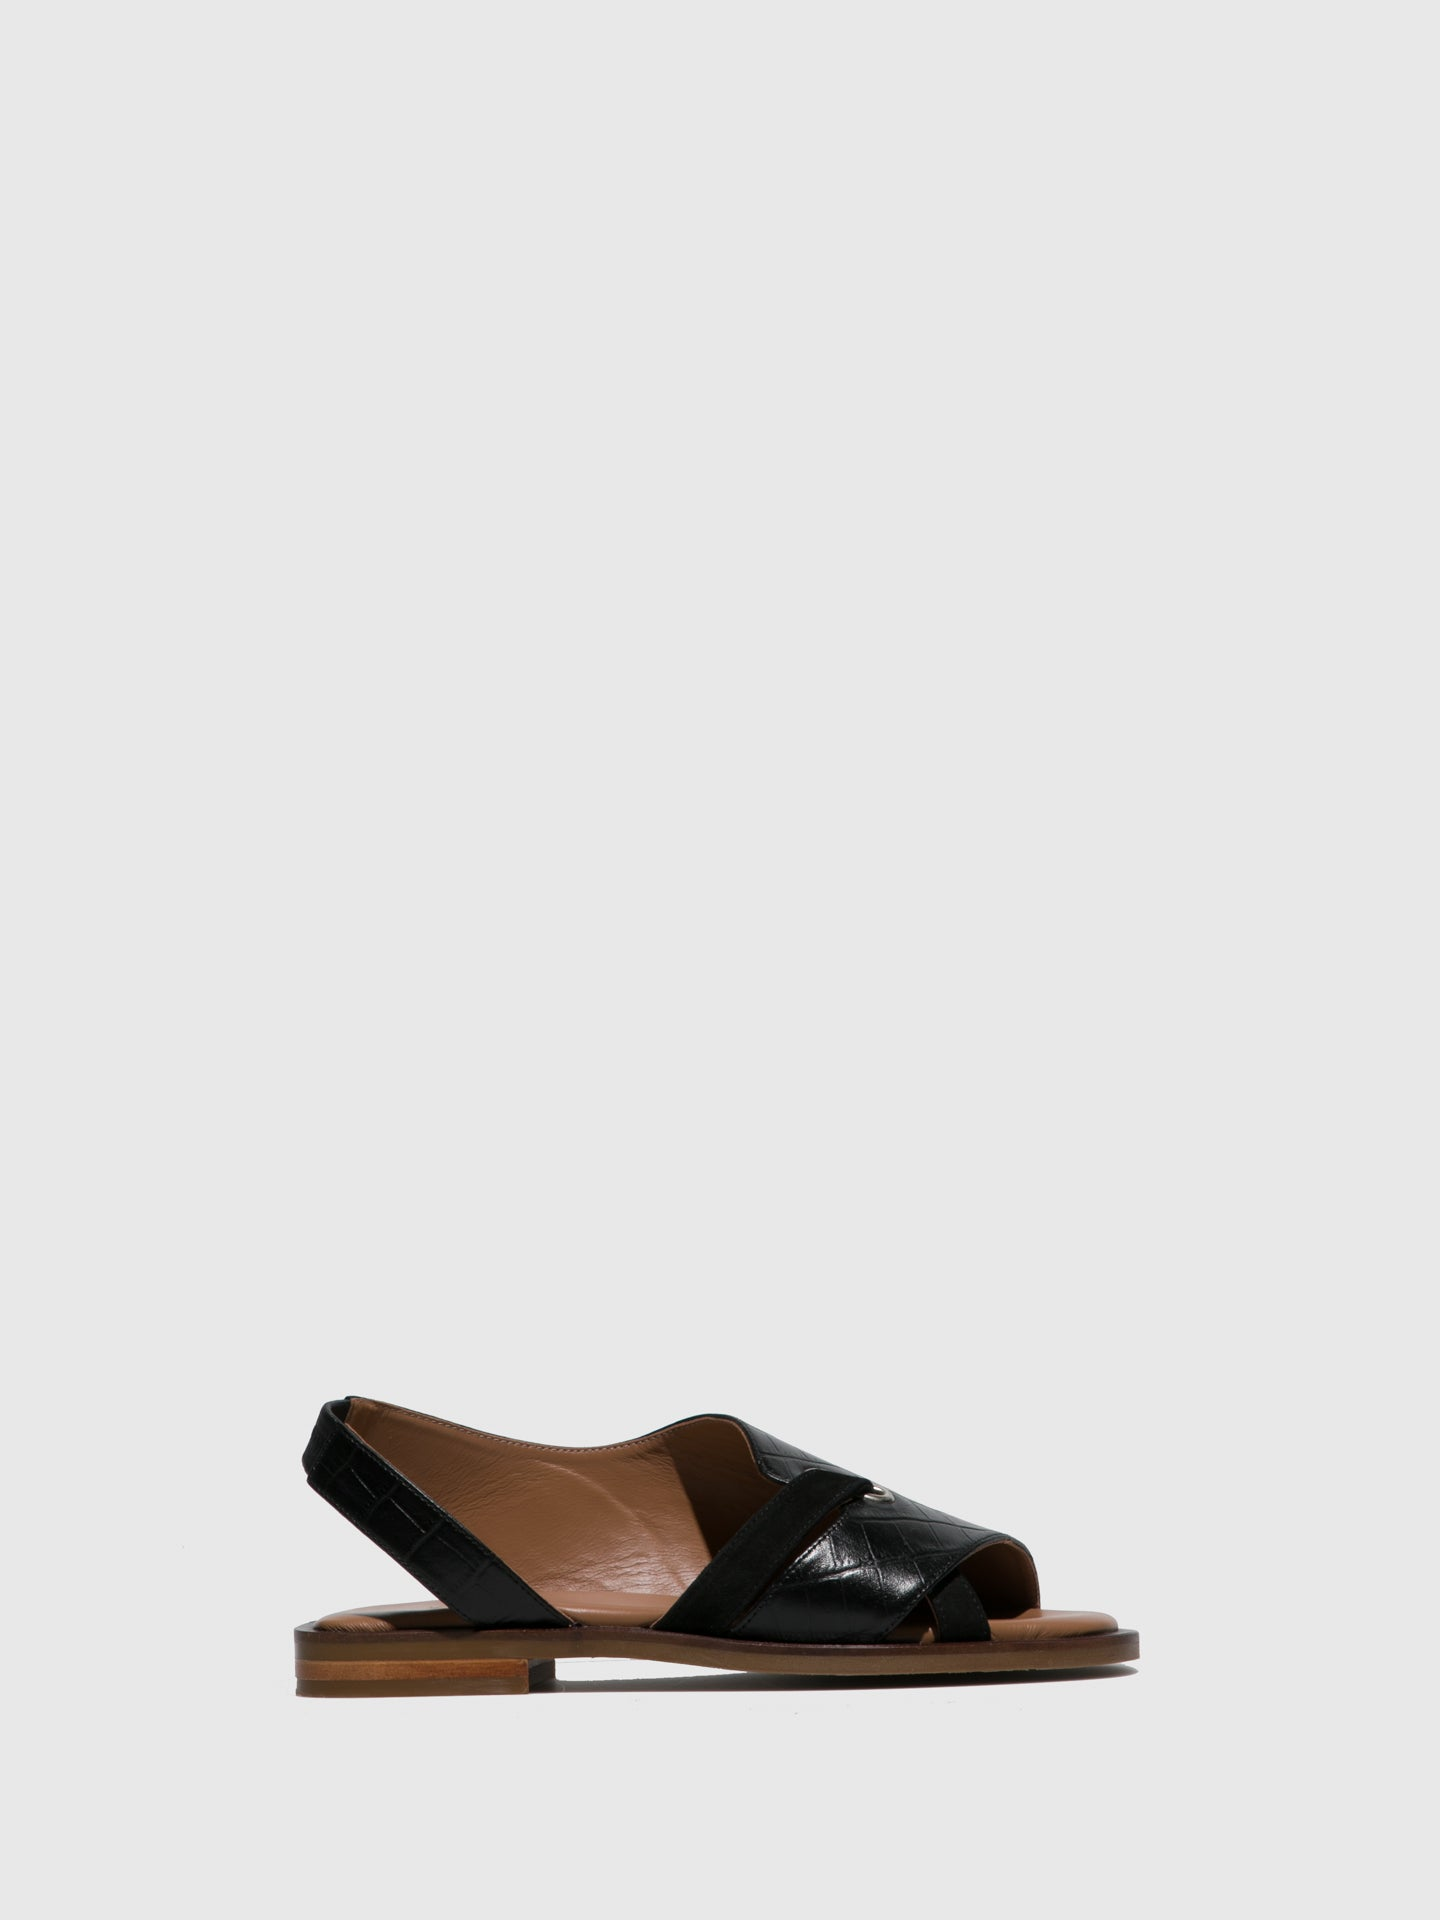 JJ Heitor Black Flat Sandals